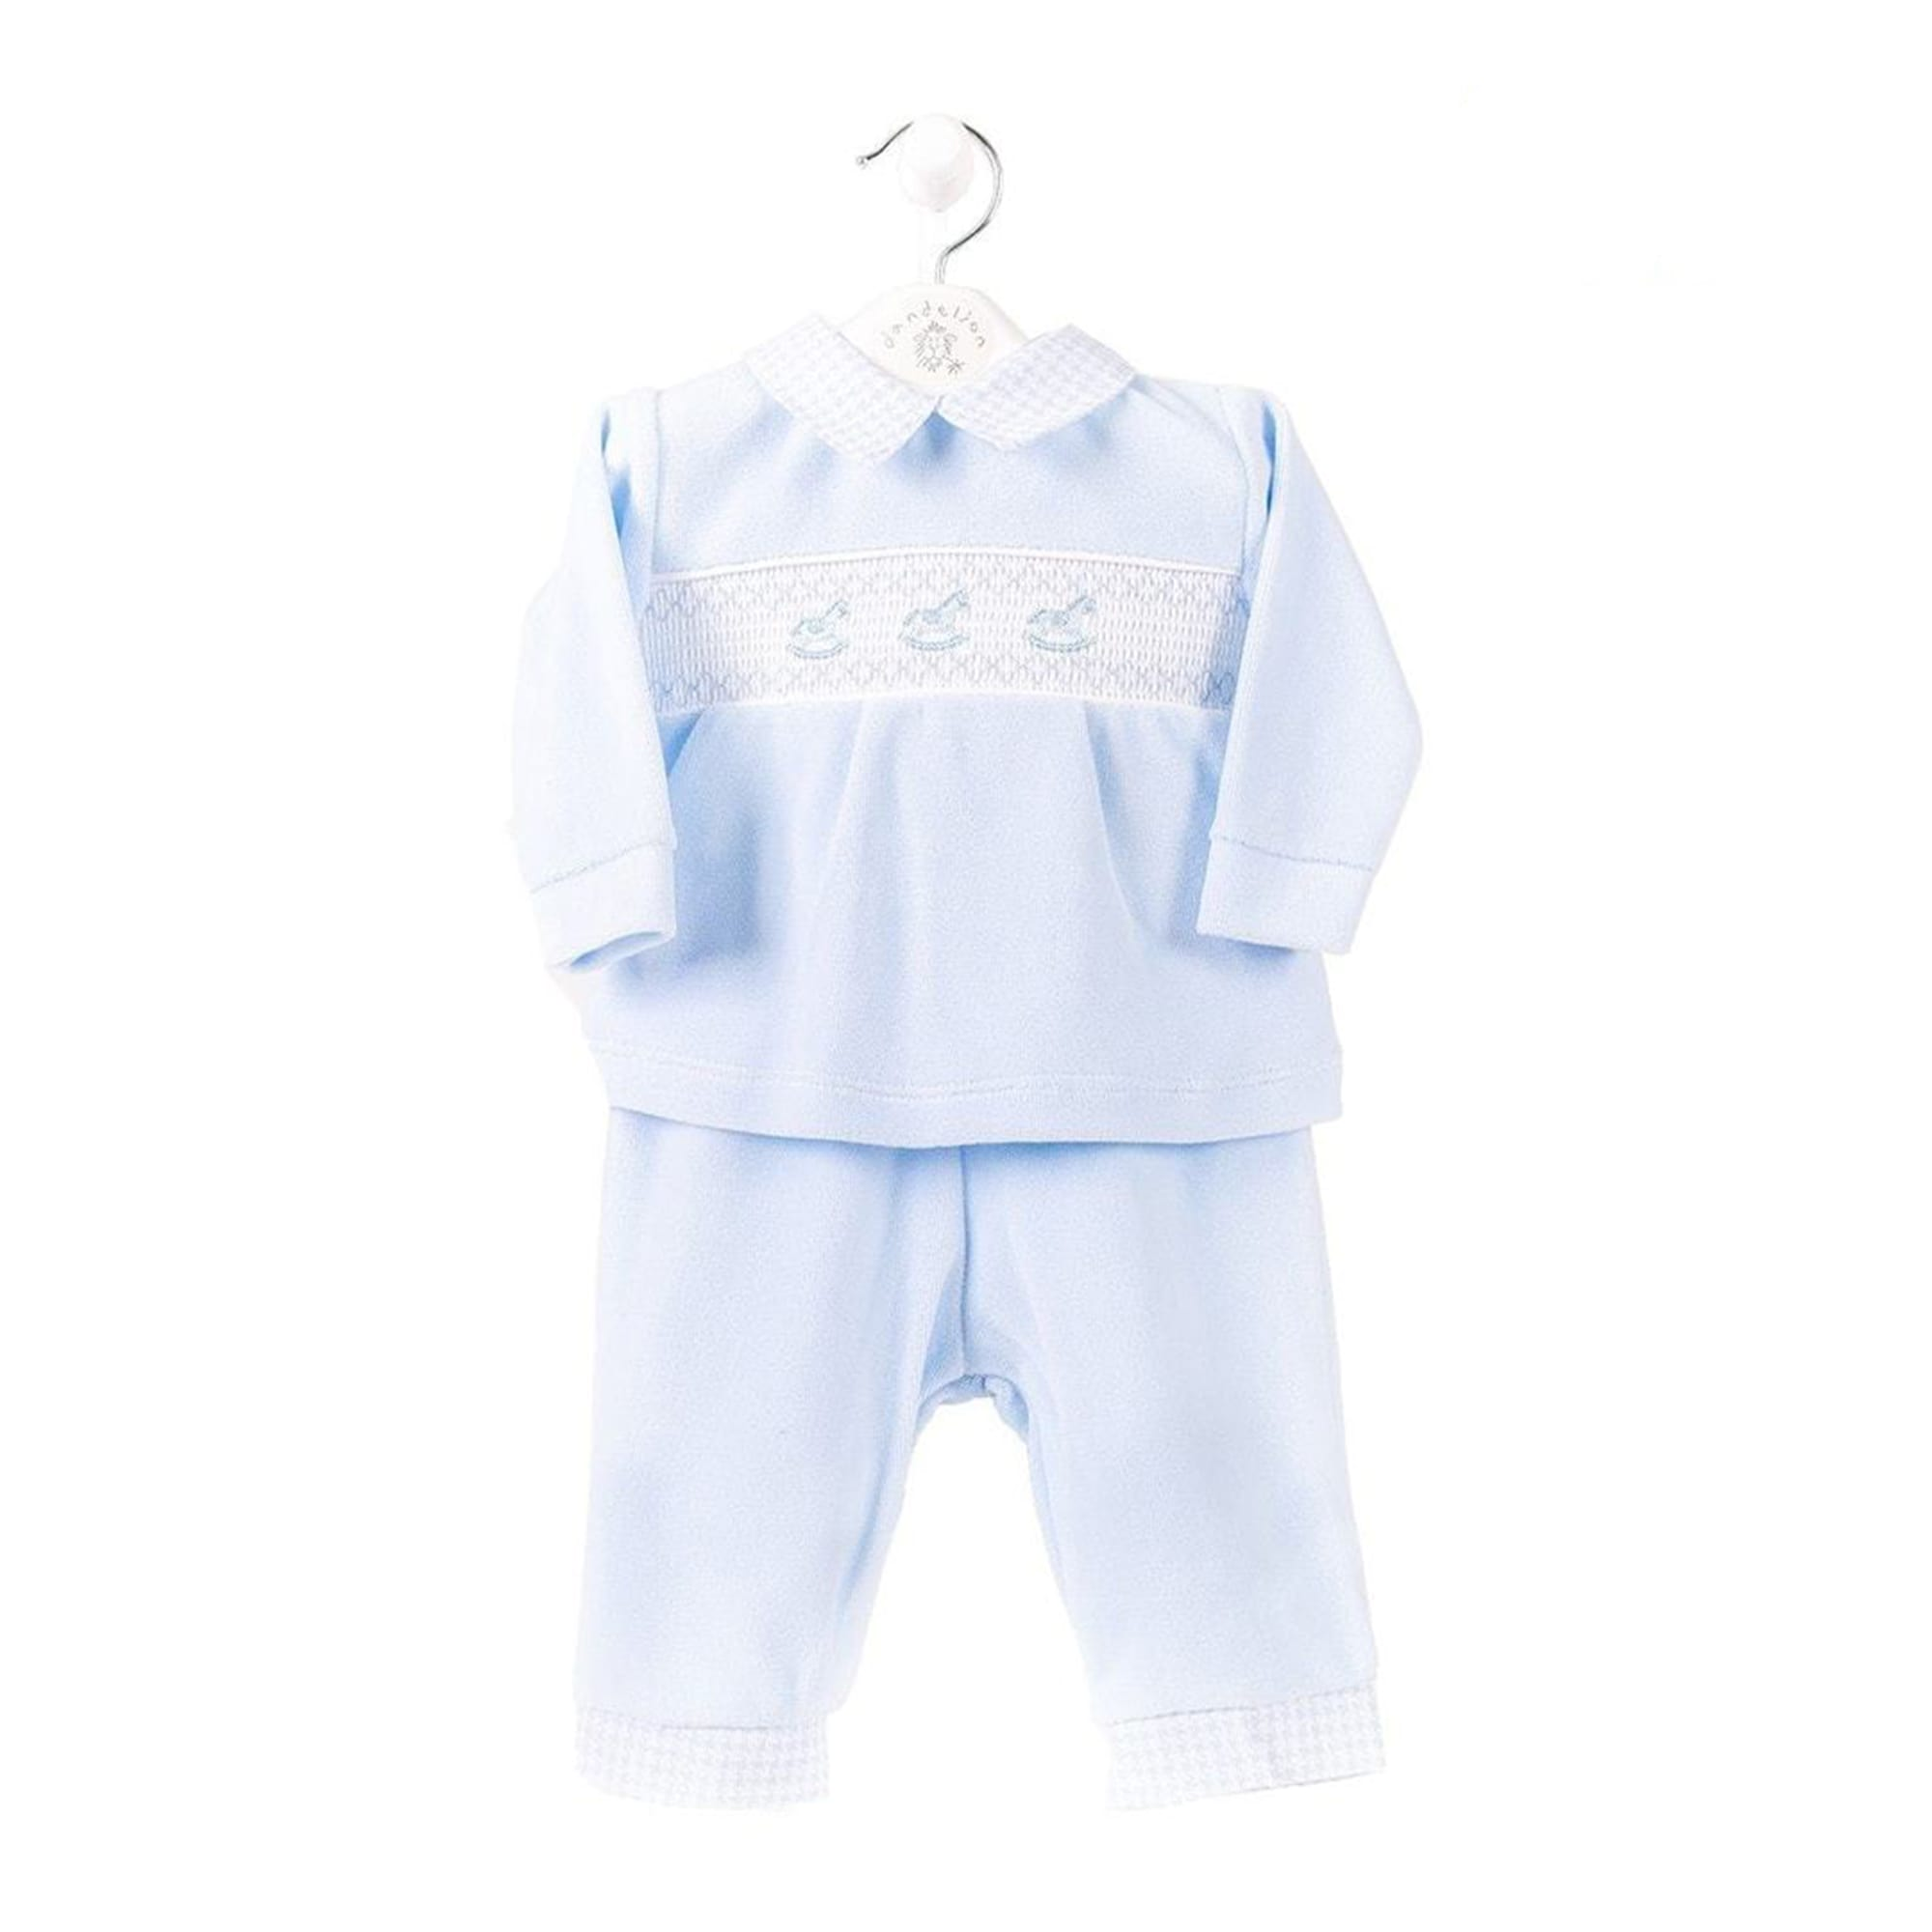 Rocking Horse Smocked Velour Set Mary Shortle